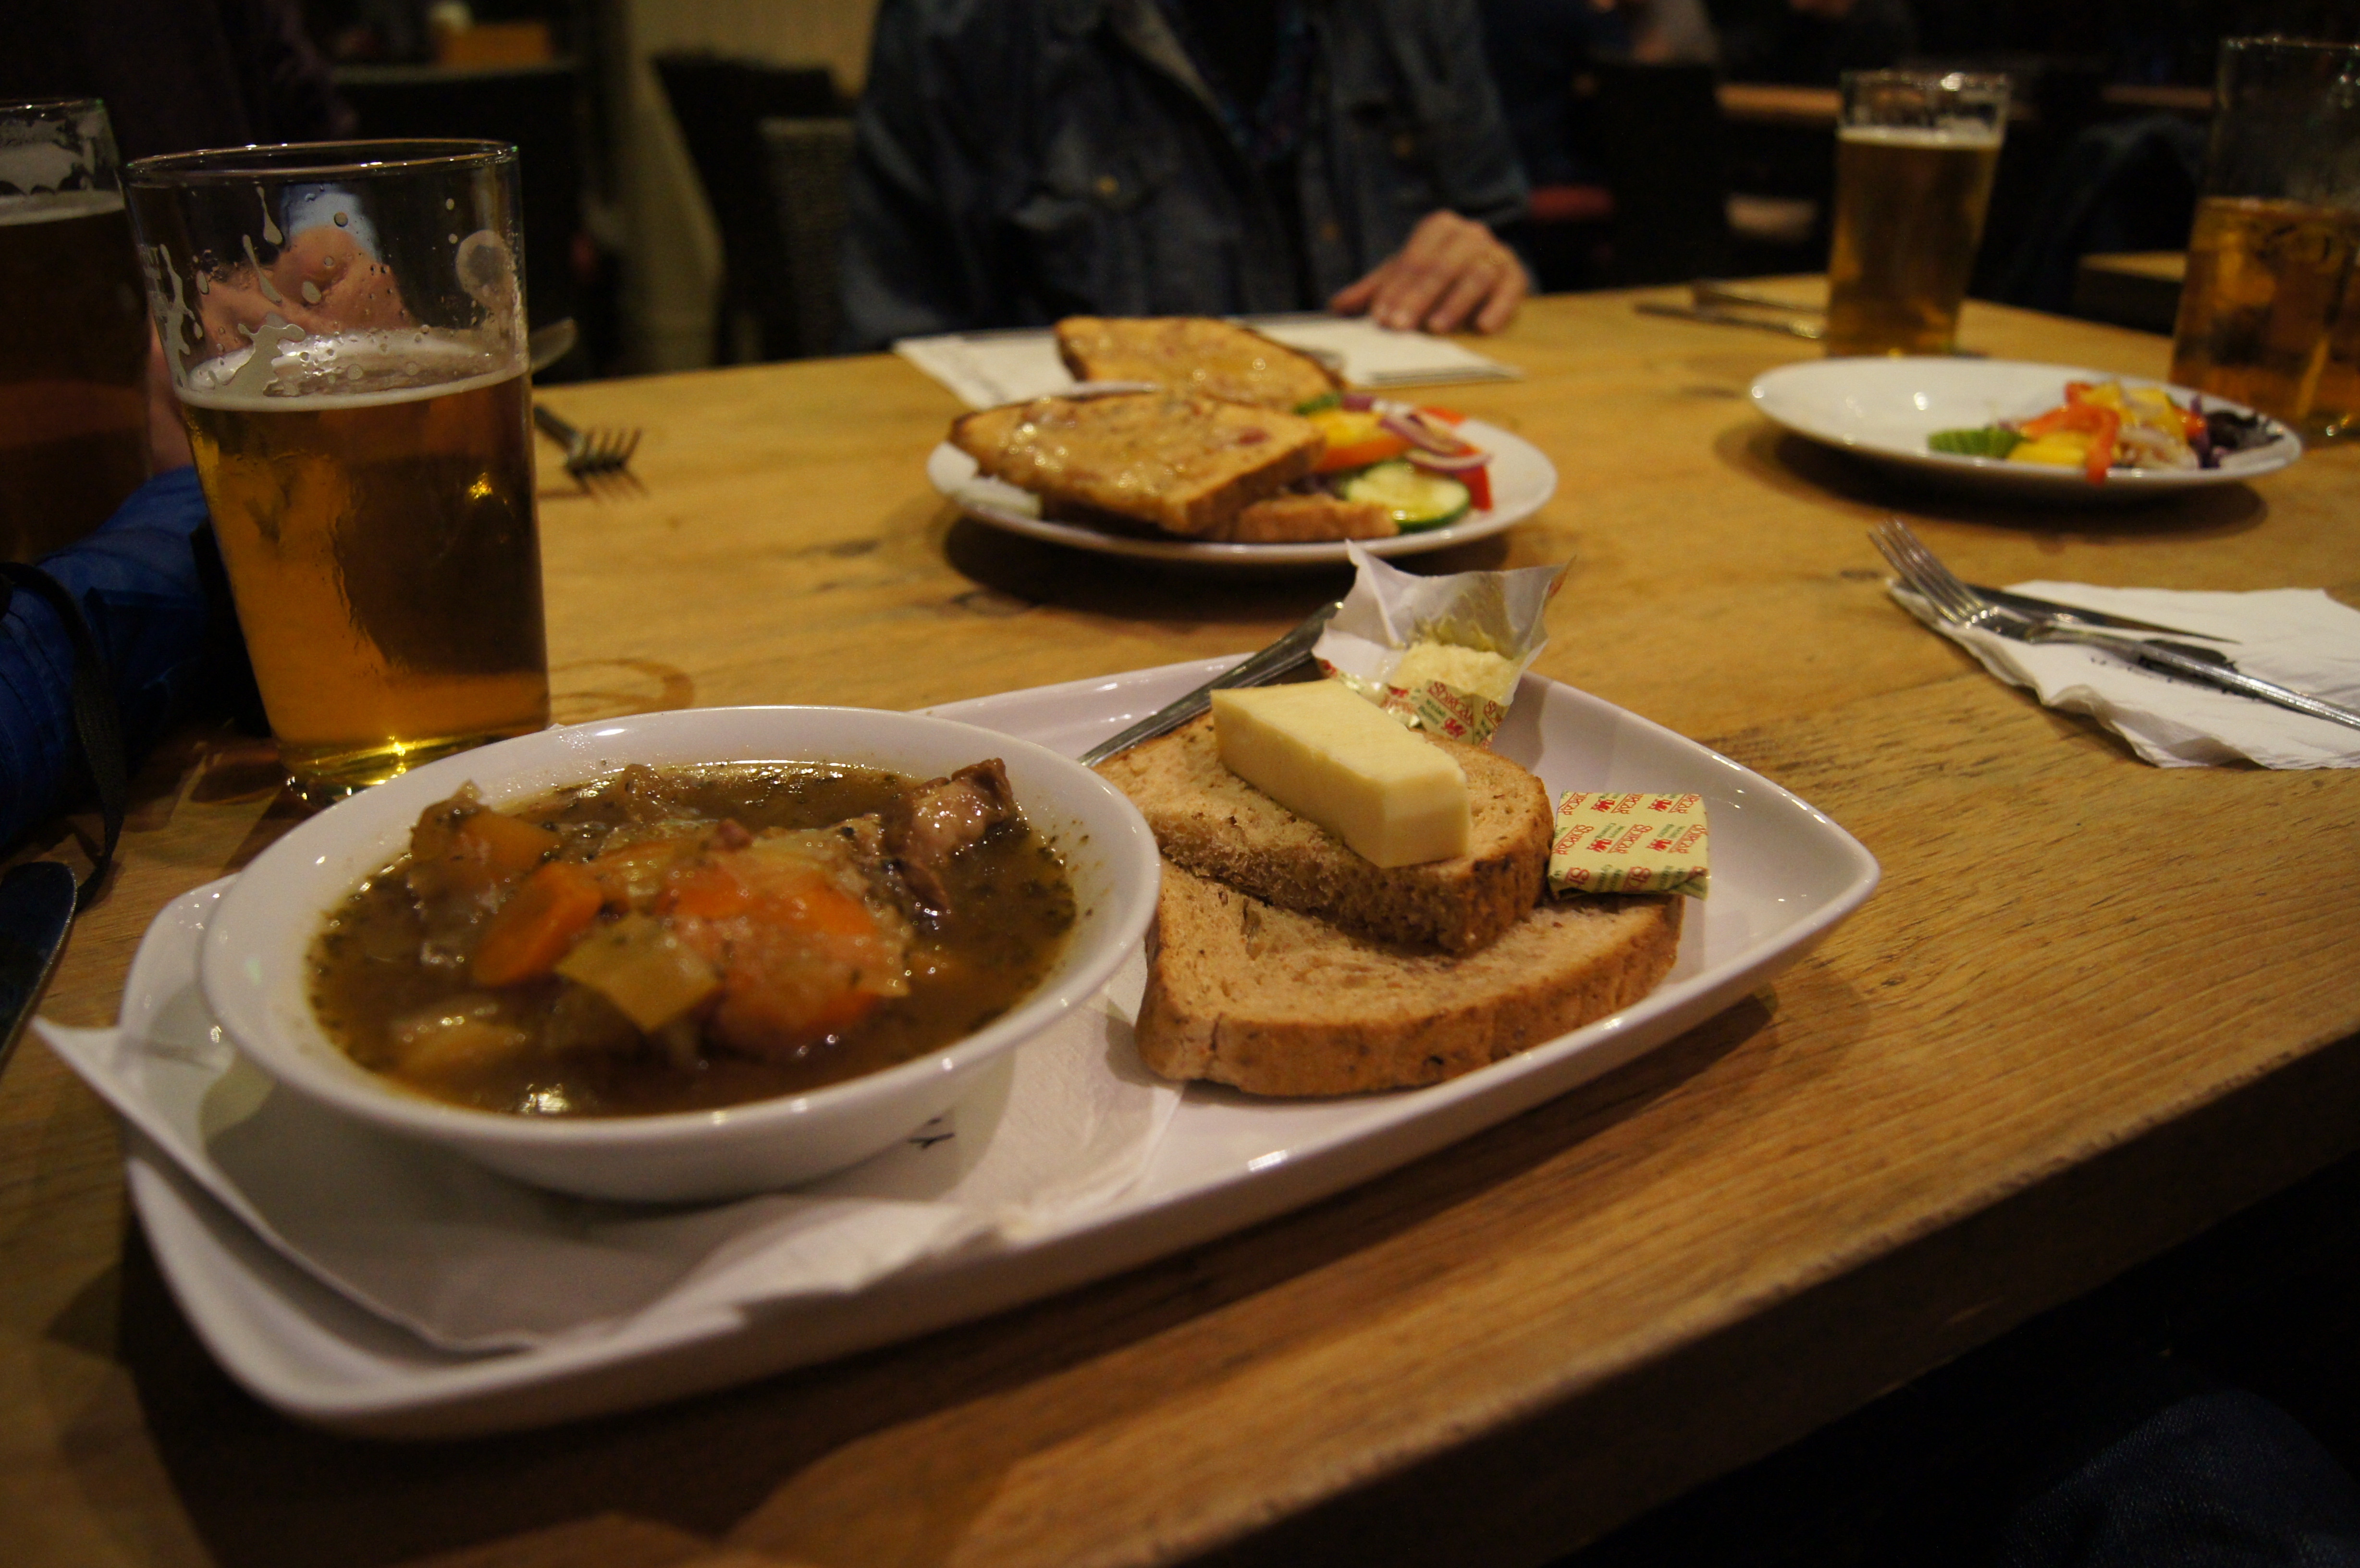 Lamb stew washed down with a pint